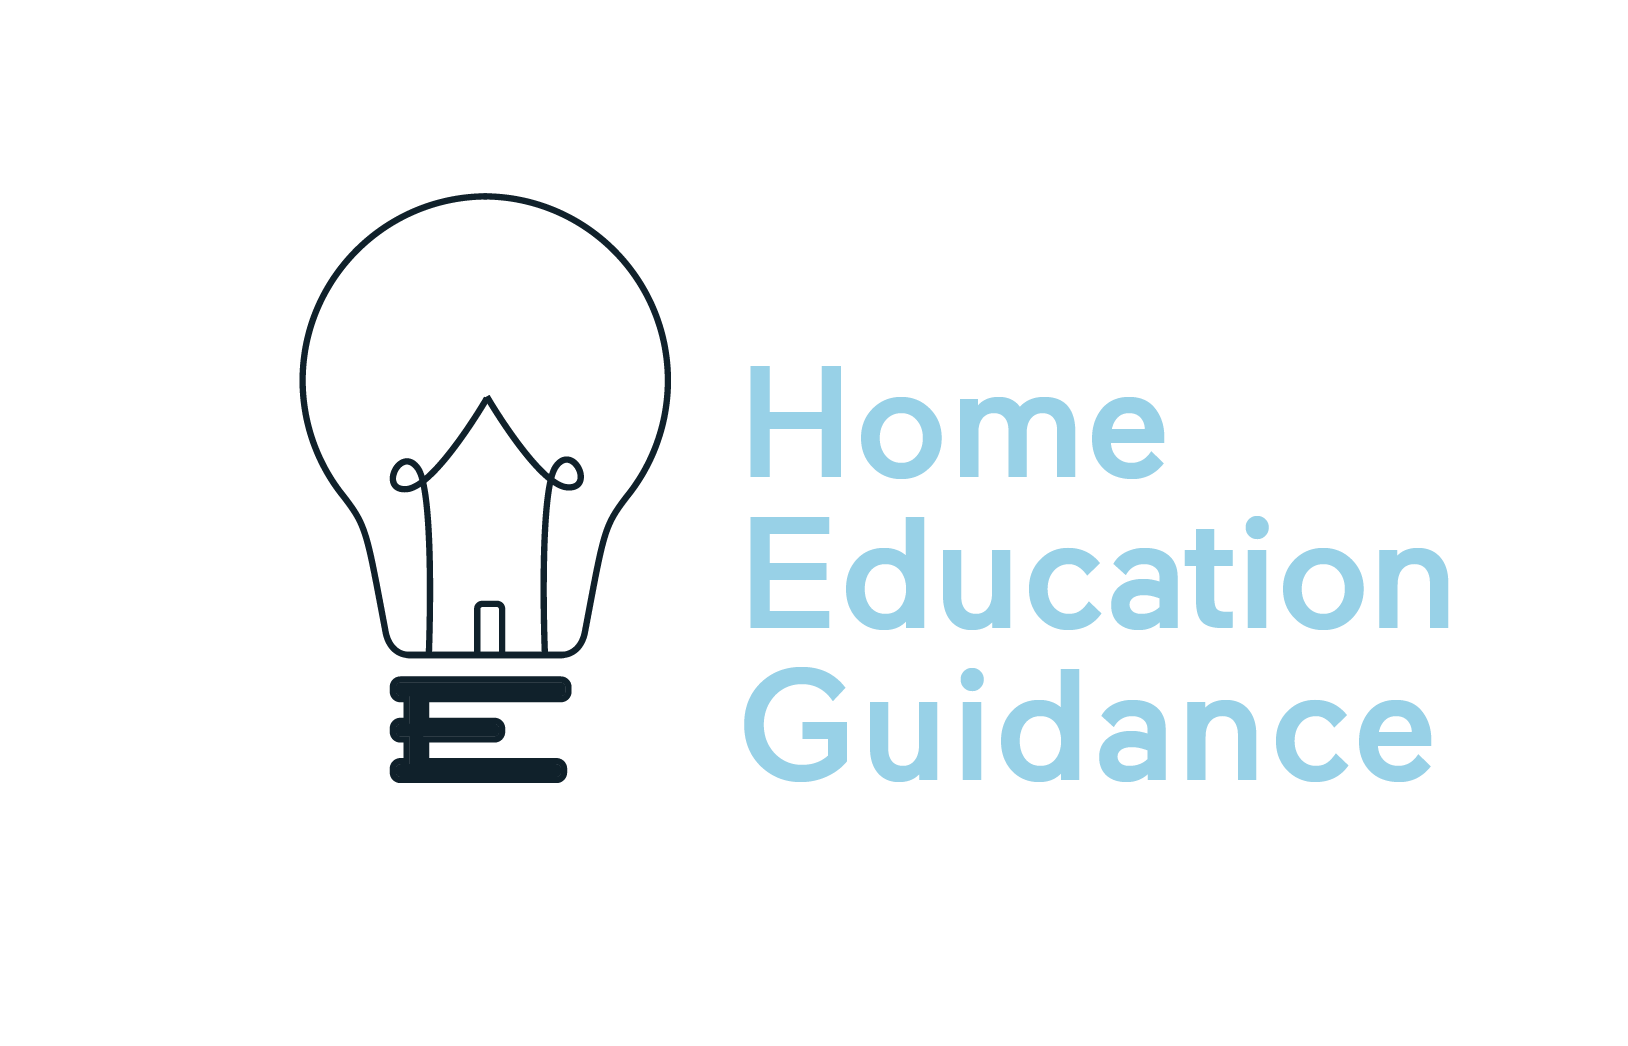 HOME EDUCATION GUIDANCE